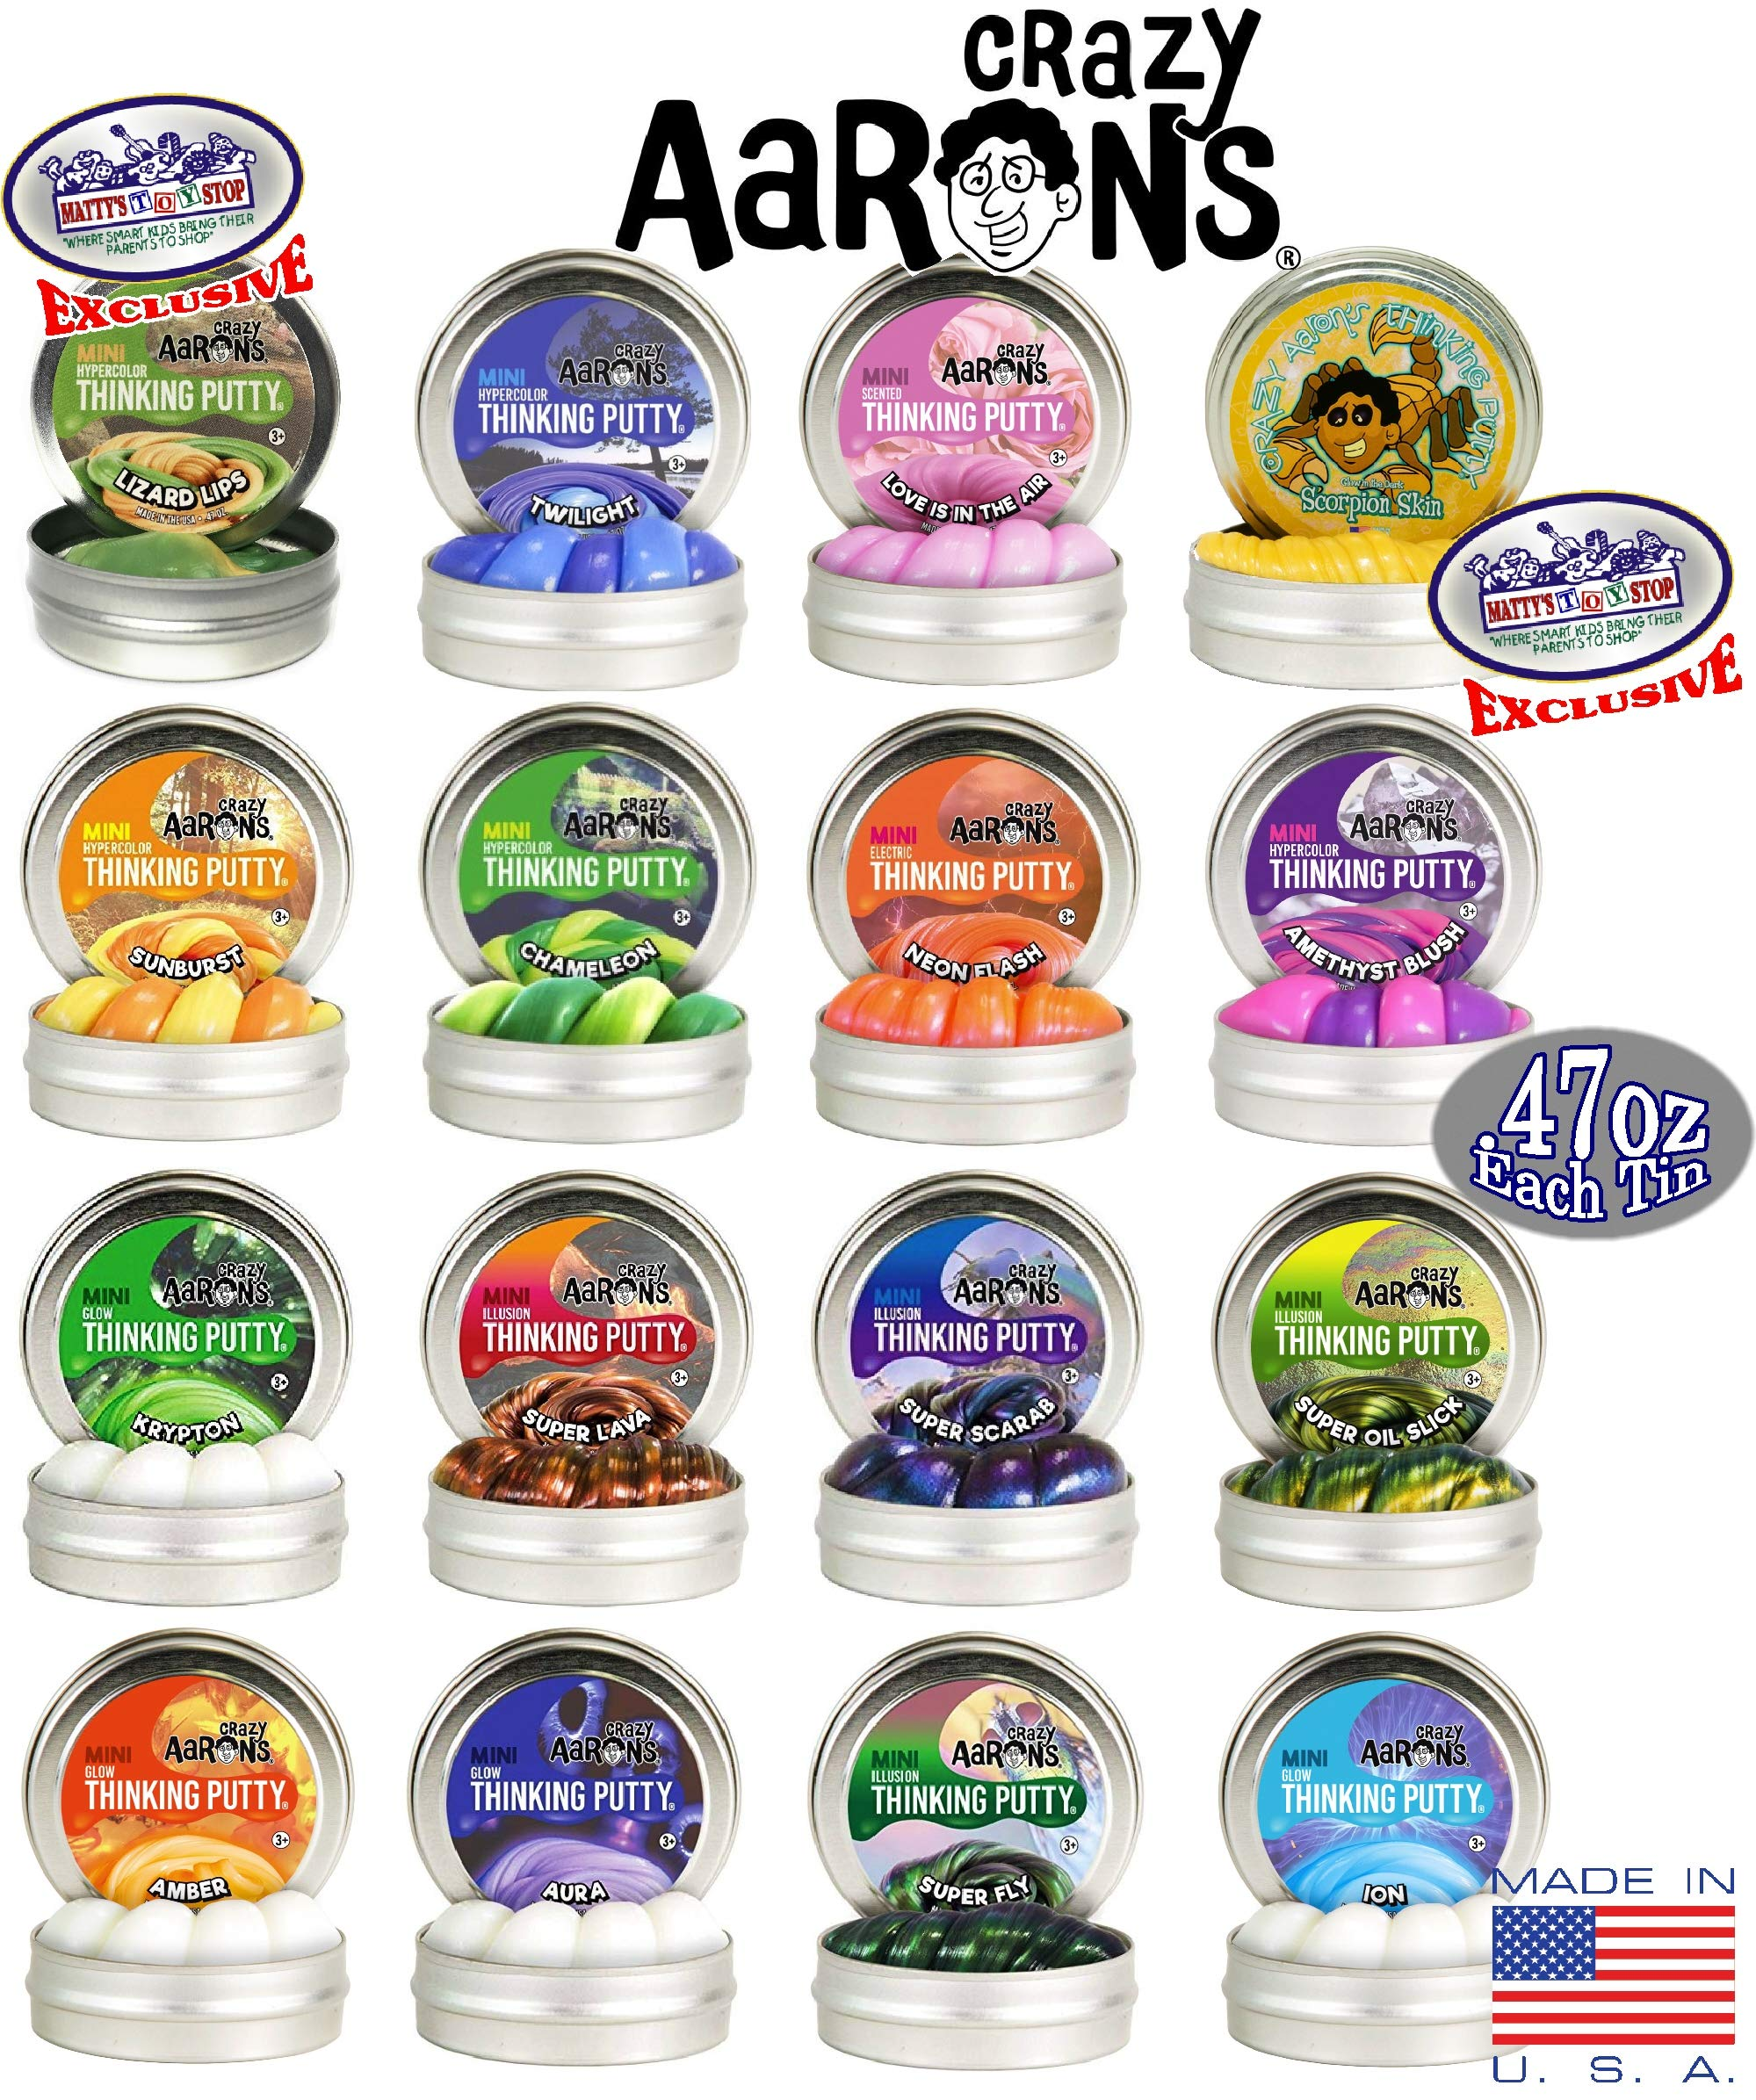 Crazy Aaron's Thinking Putty Mini Tins Complete Gift Set Bundle Featuring Hypercolor, Glow in The Dark, Super Illusion, Electric Color, Scented, Exclusive Lizard Lips & Scorpion Skin - 16 Pack by Crazy Aaron's